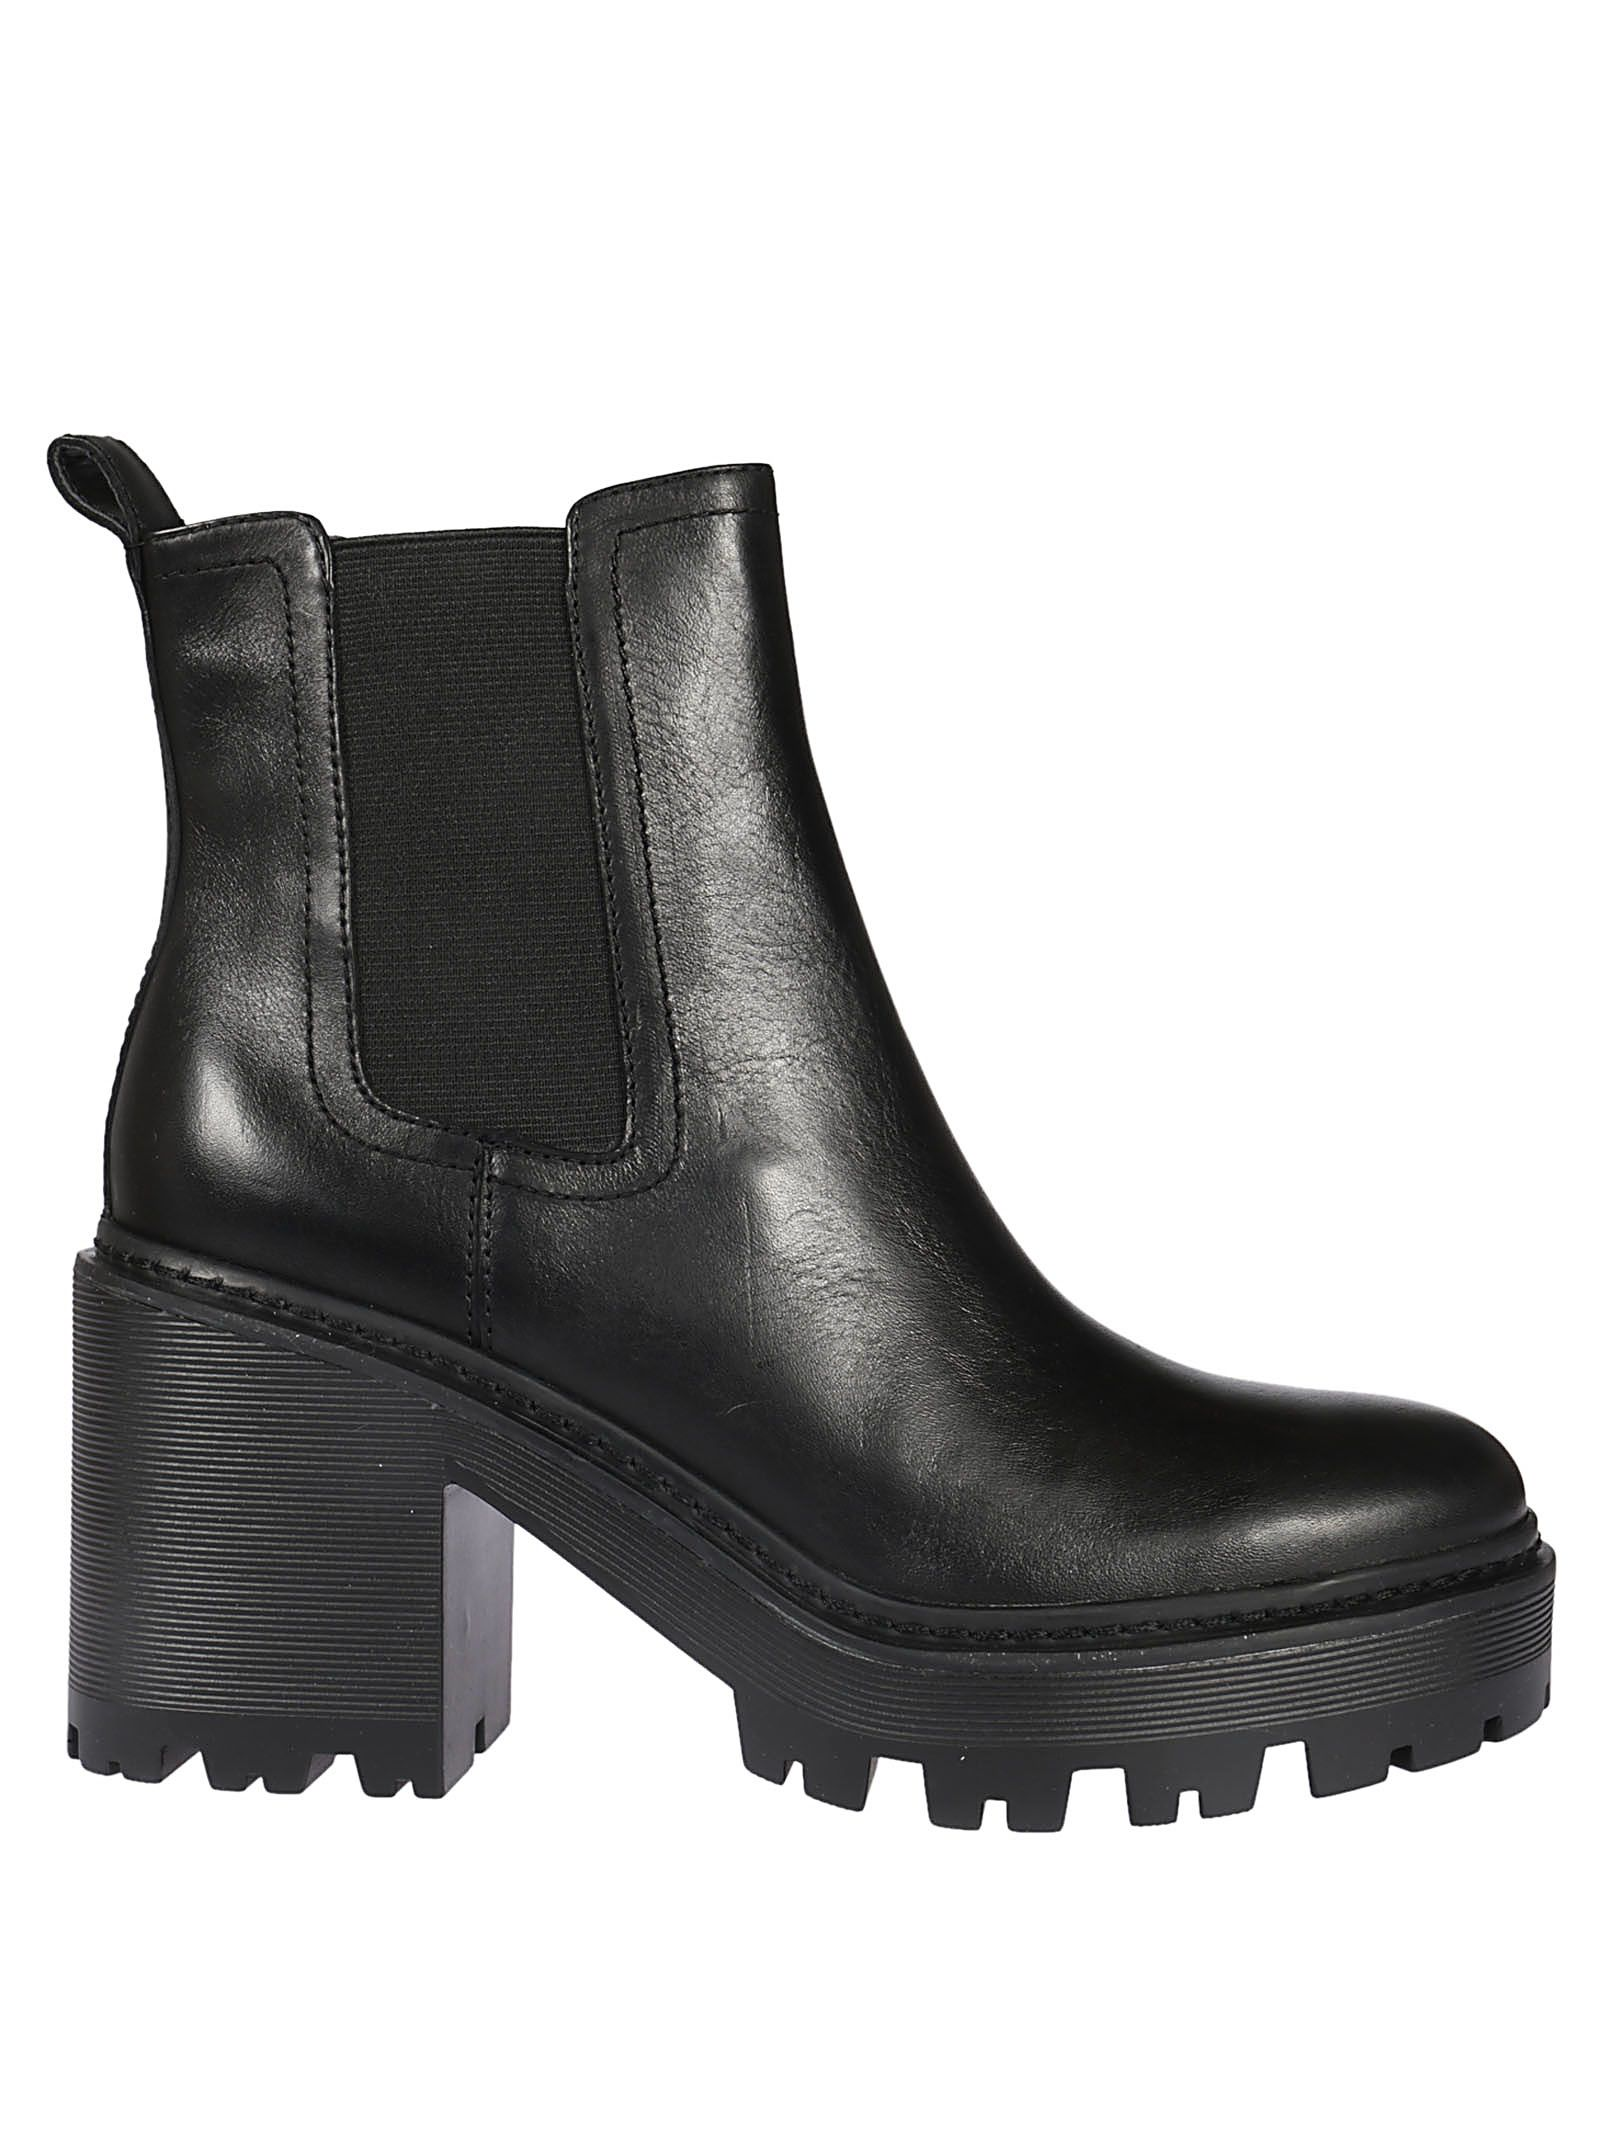 kendall + kylie -  High Ankle Platform Boots